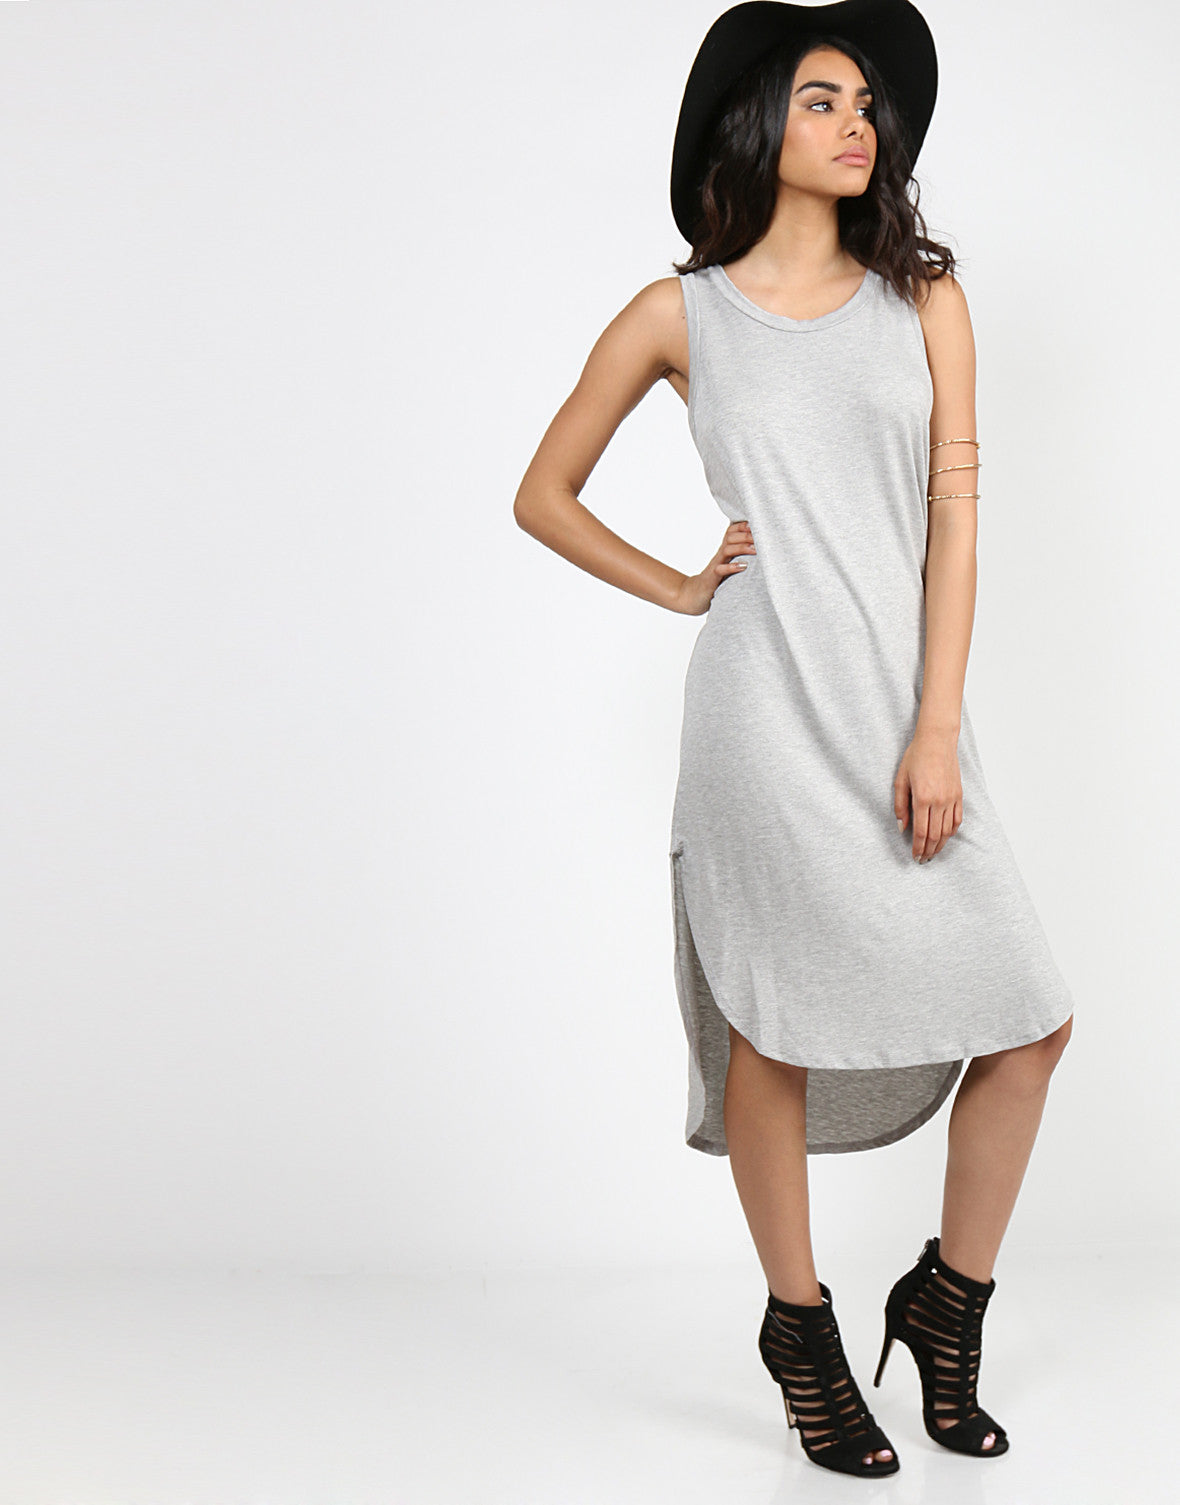 Basic Sleeveless Hi-Low Dress - Heather Gray